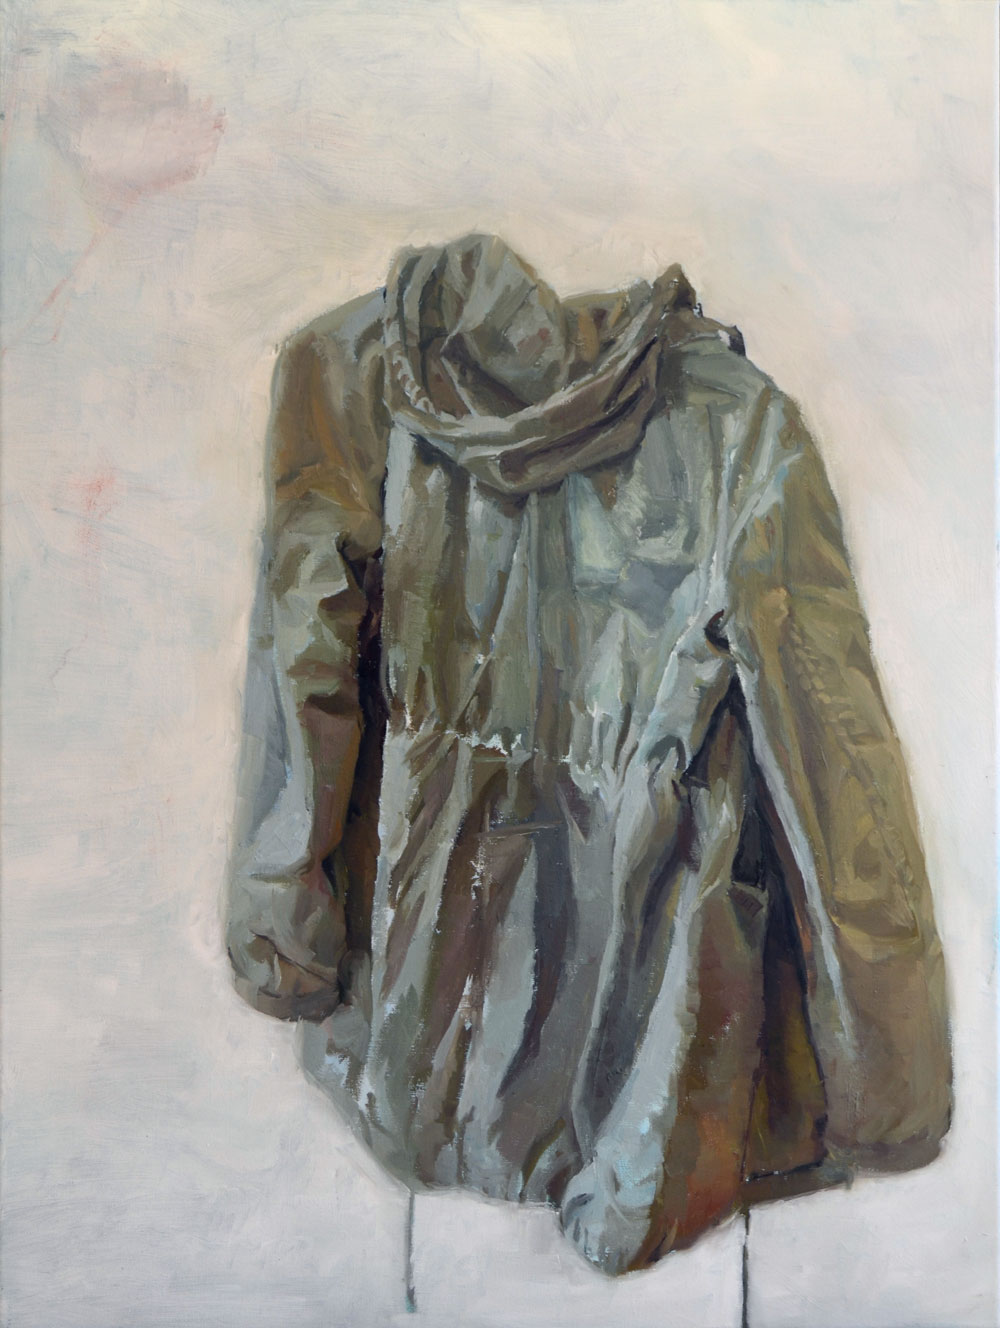 Jacket / 2016 / oil on canvas / 80cm x 60cm